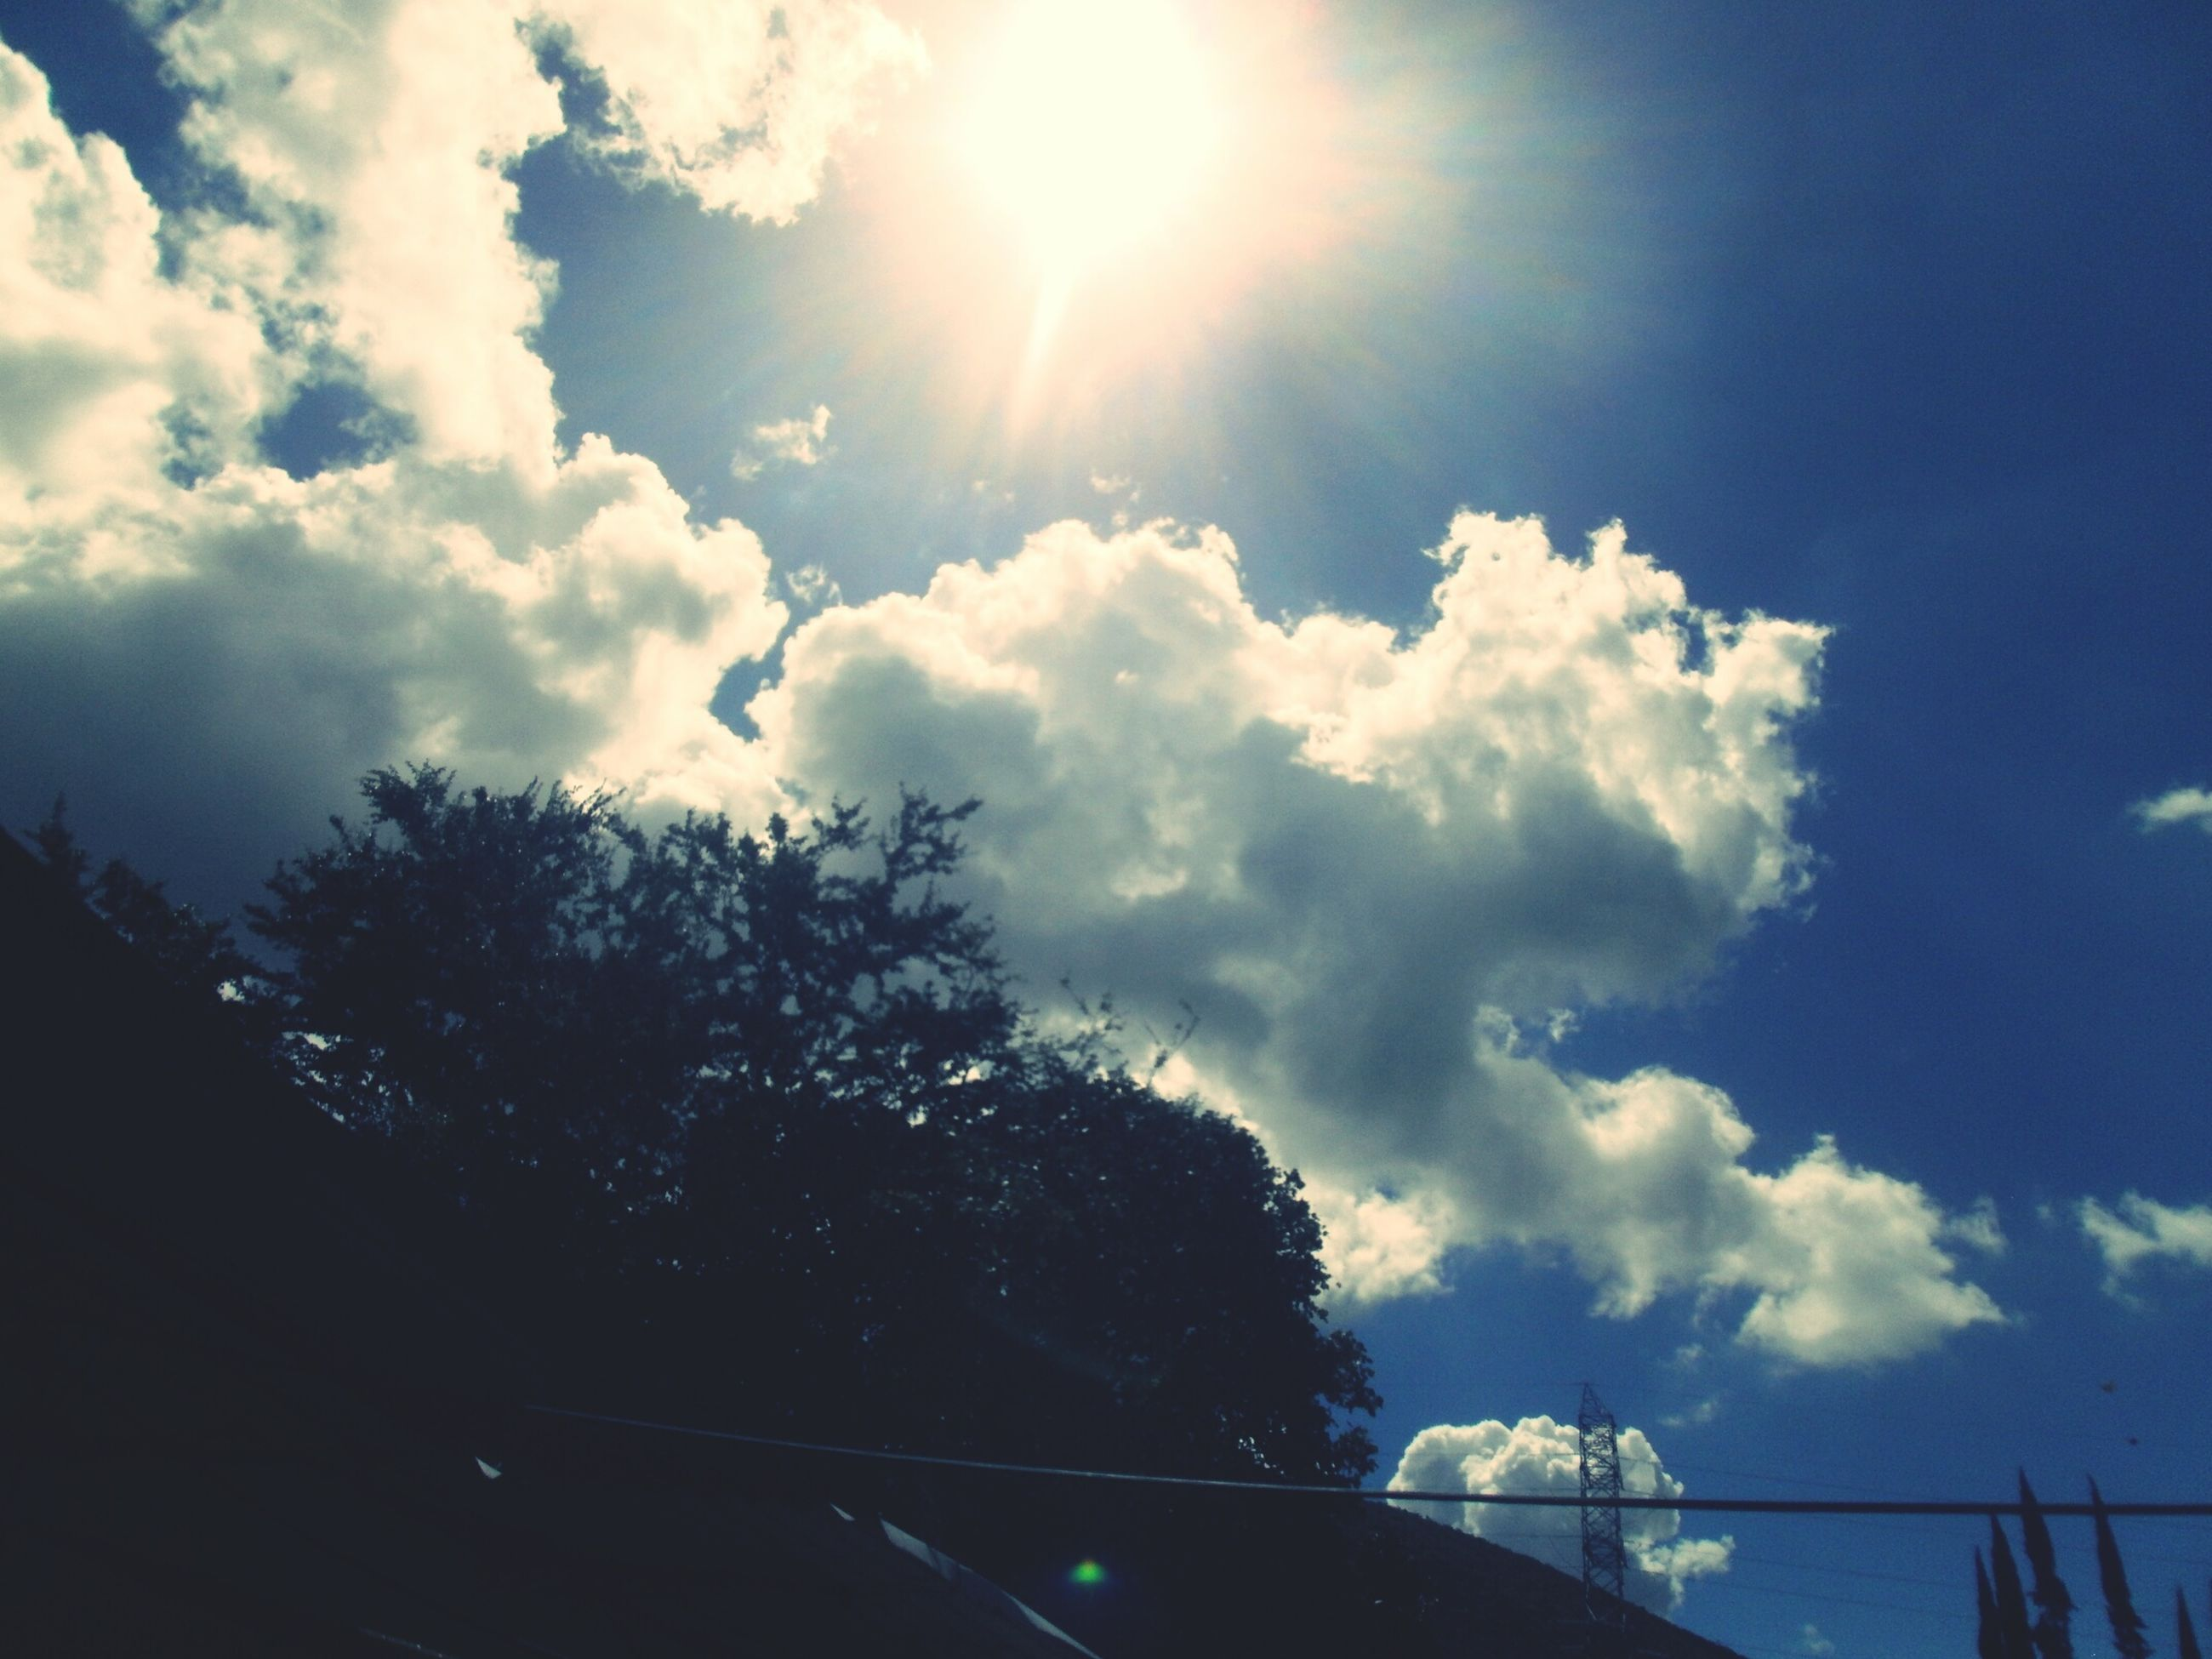 sun, sky, sunbeam, sunlight, low angle view, cloud - sky, silhouette, lens flare, tree, cloud, nature, sunny, beauty in nature, tranquility, blue, bright, day, tranquil scene, scenics, outdoors